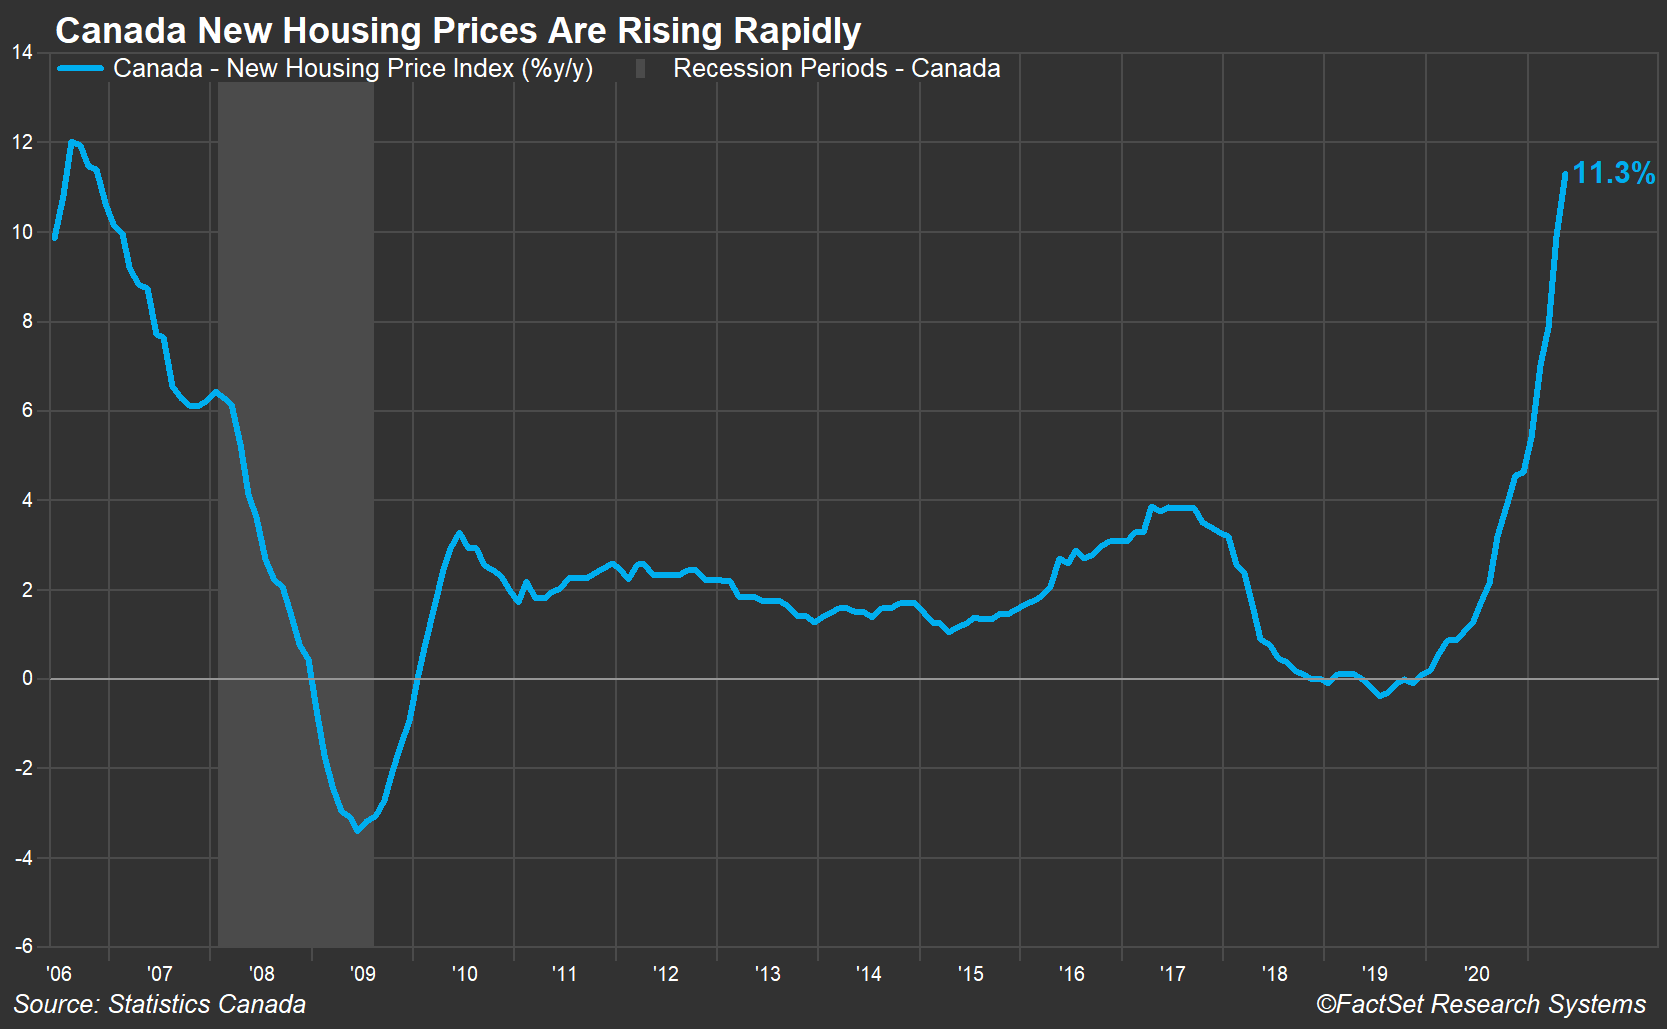 Canada New Housing Prices